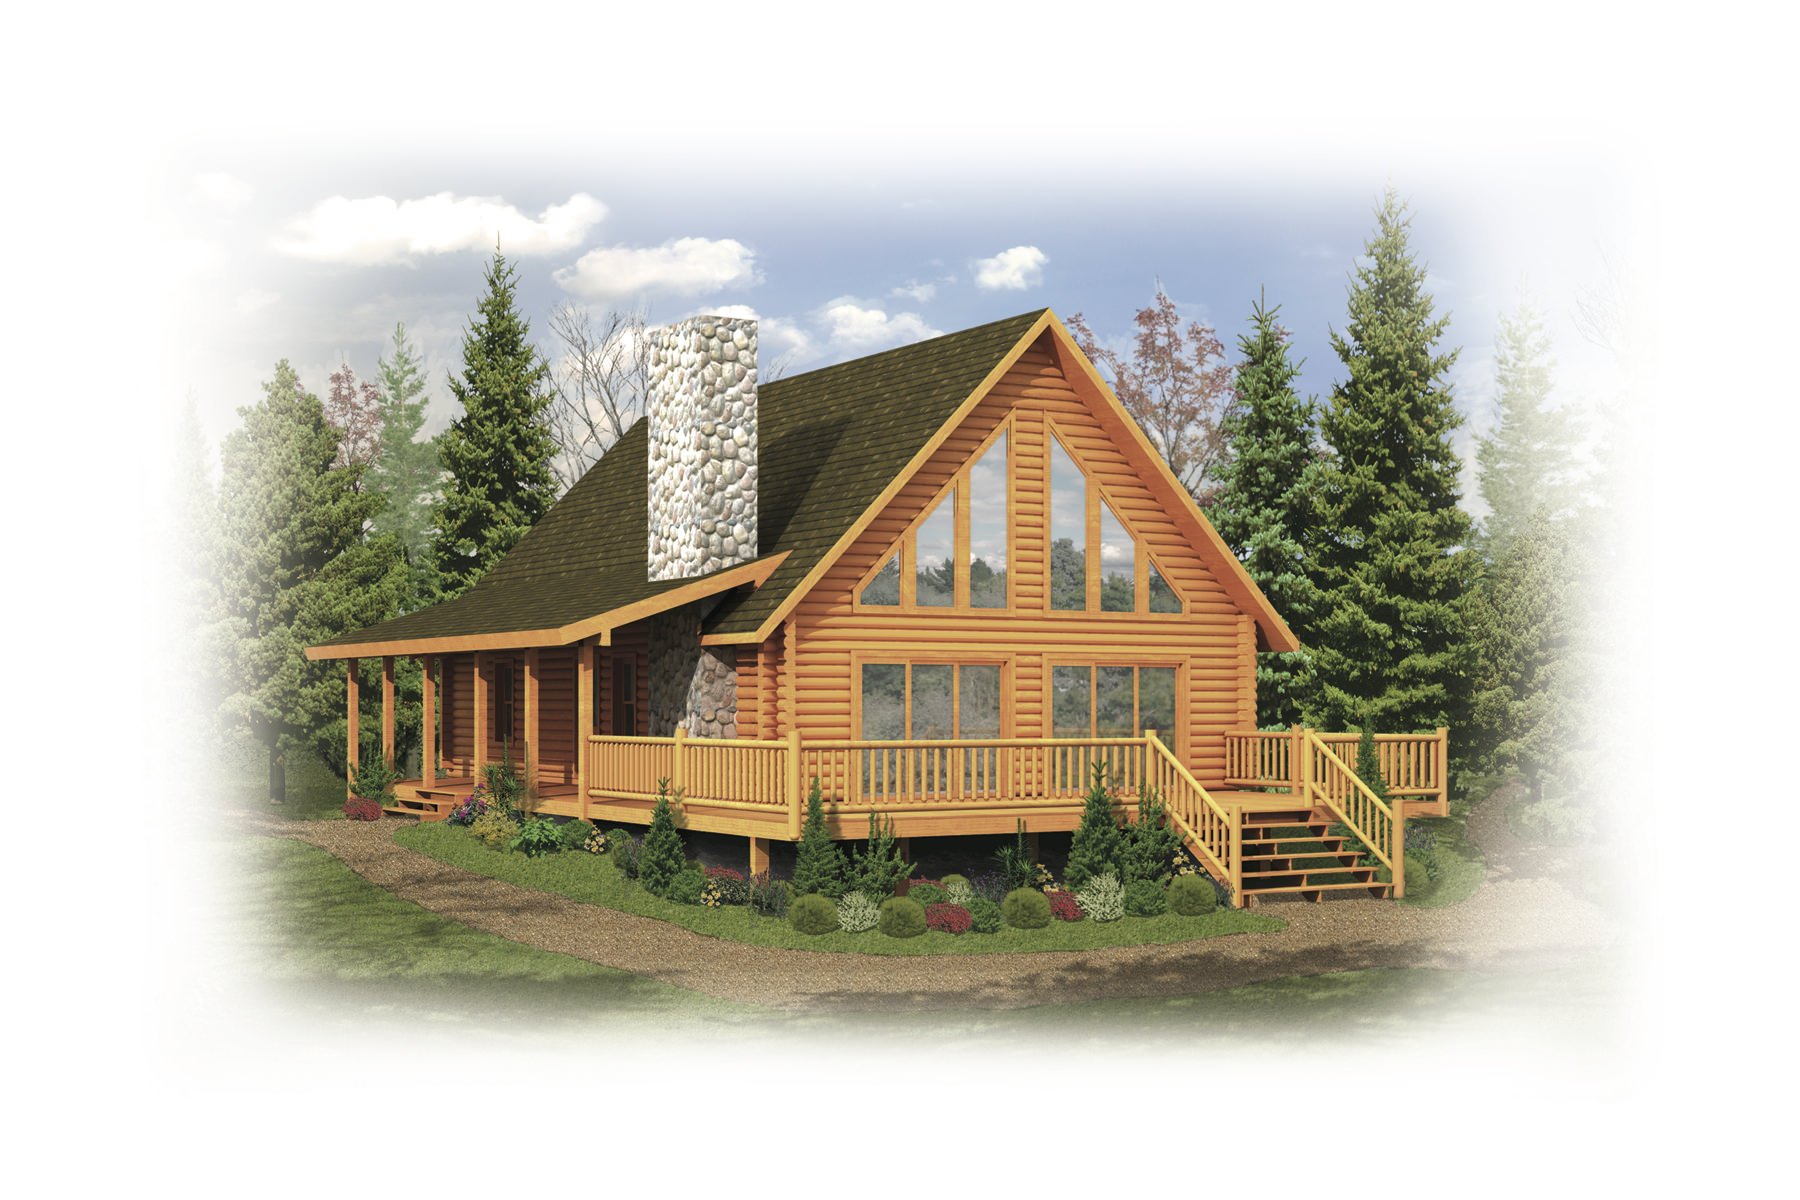 Tomahawk log home plan by strongwood log timber company for Timber log home plans